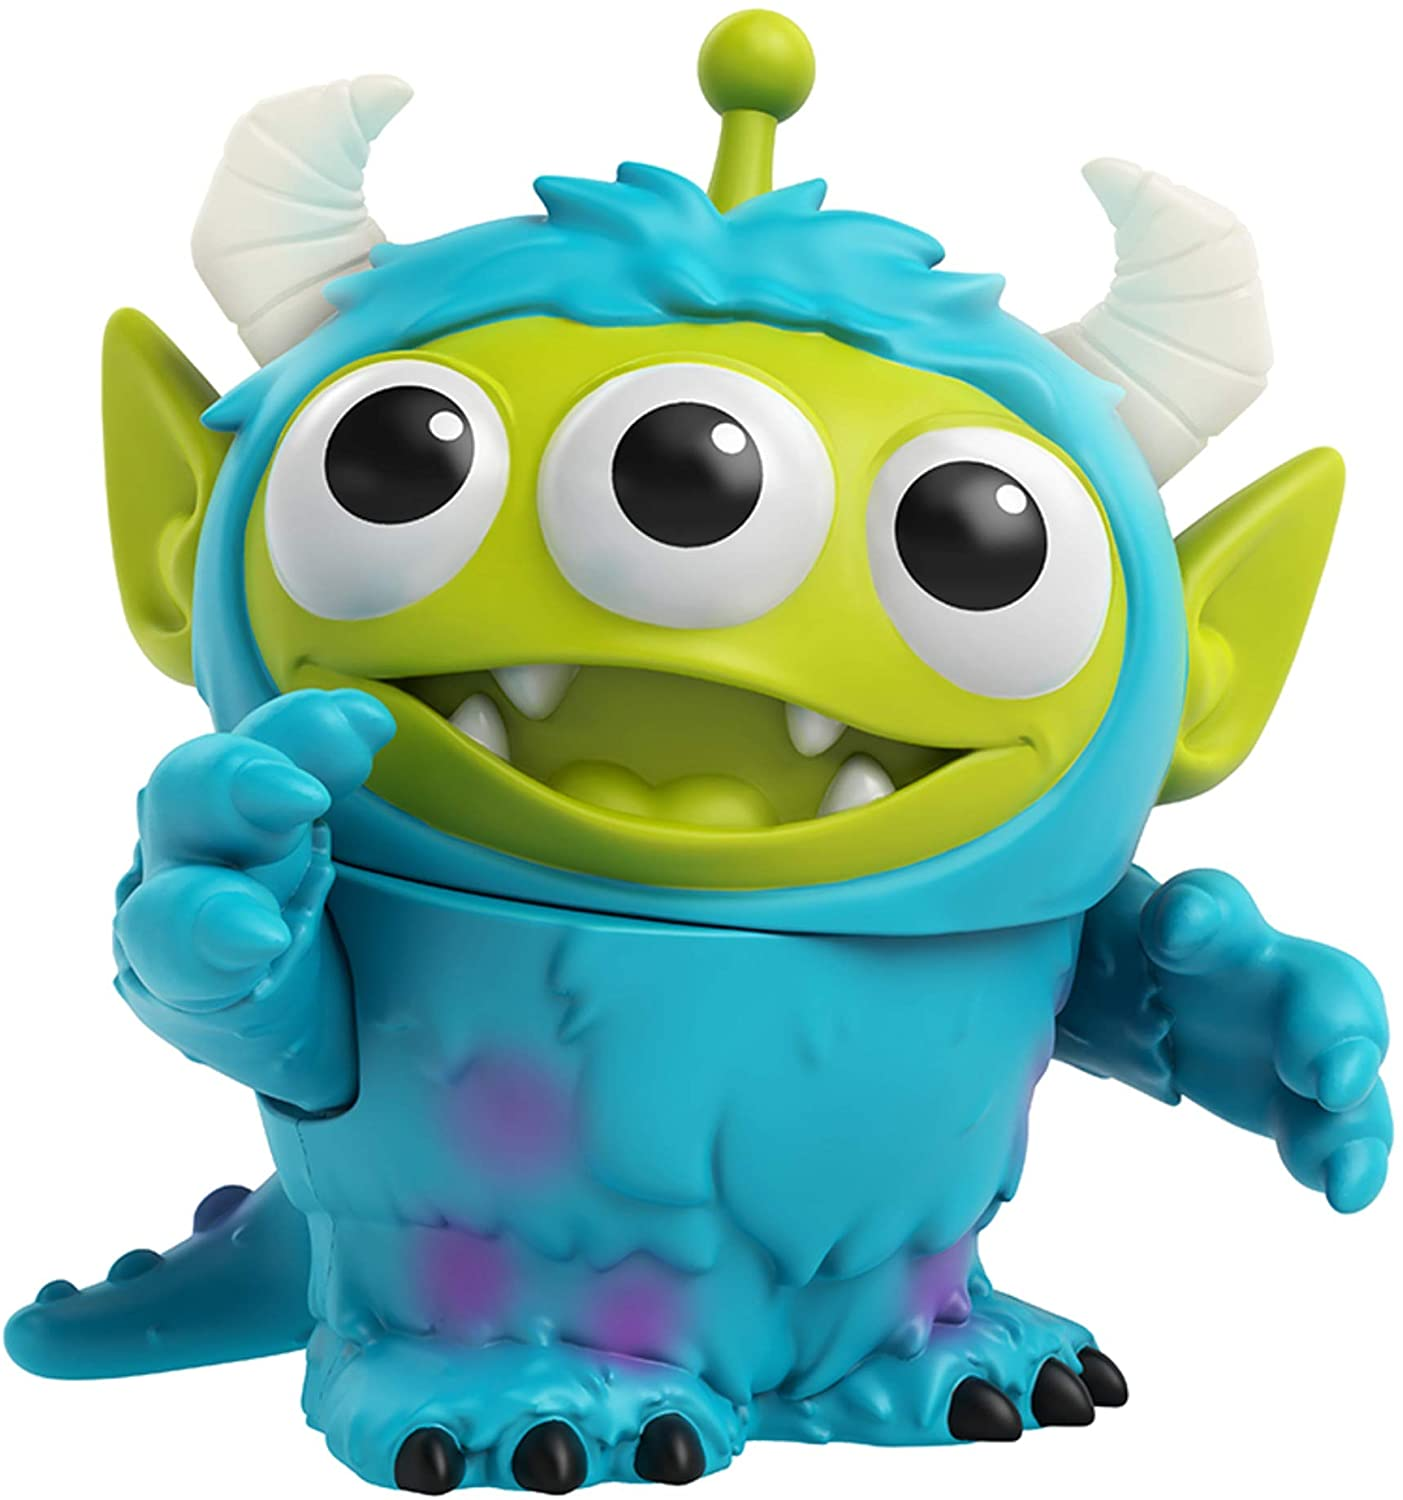 Disney Pixar Alien Remix Sulley Figure